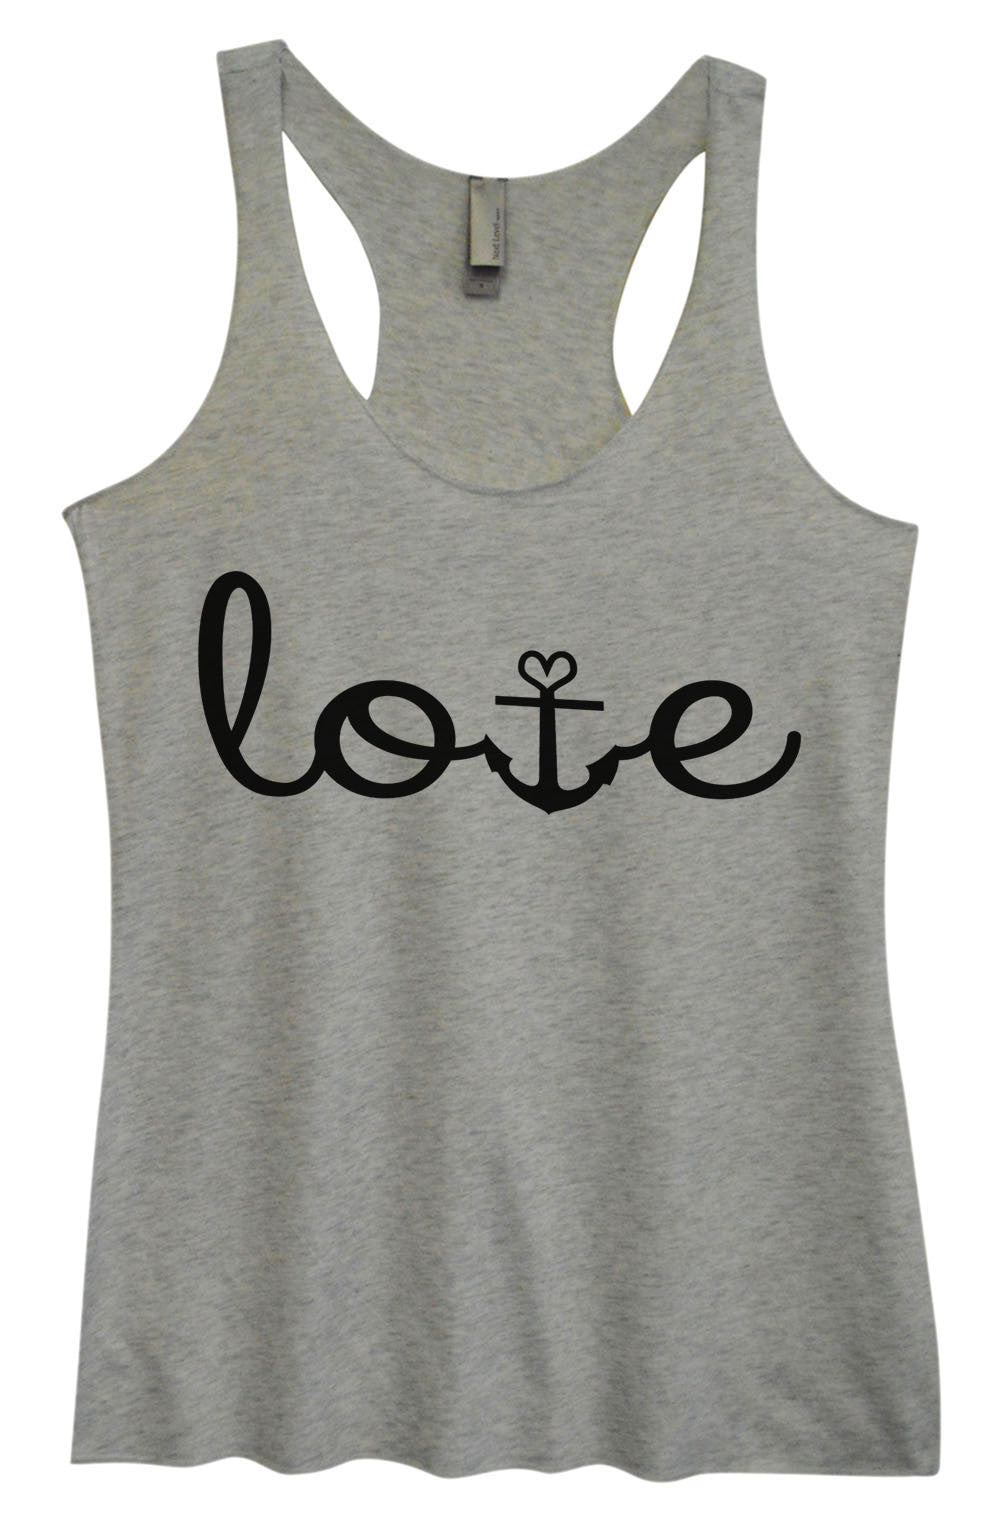 Womens Fashion Triblend Tank Top - Love - Tri-935 - Funny Shirts Tank Tops Burnouts and Triblends  - 2